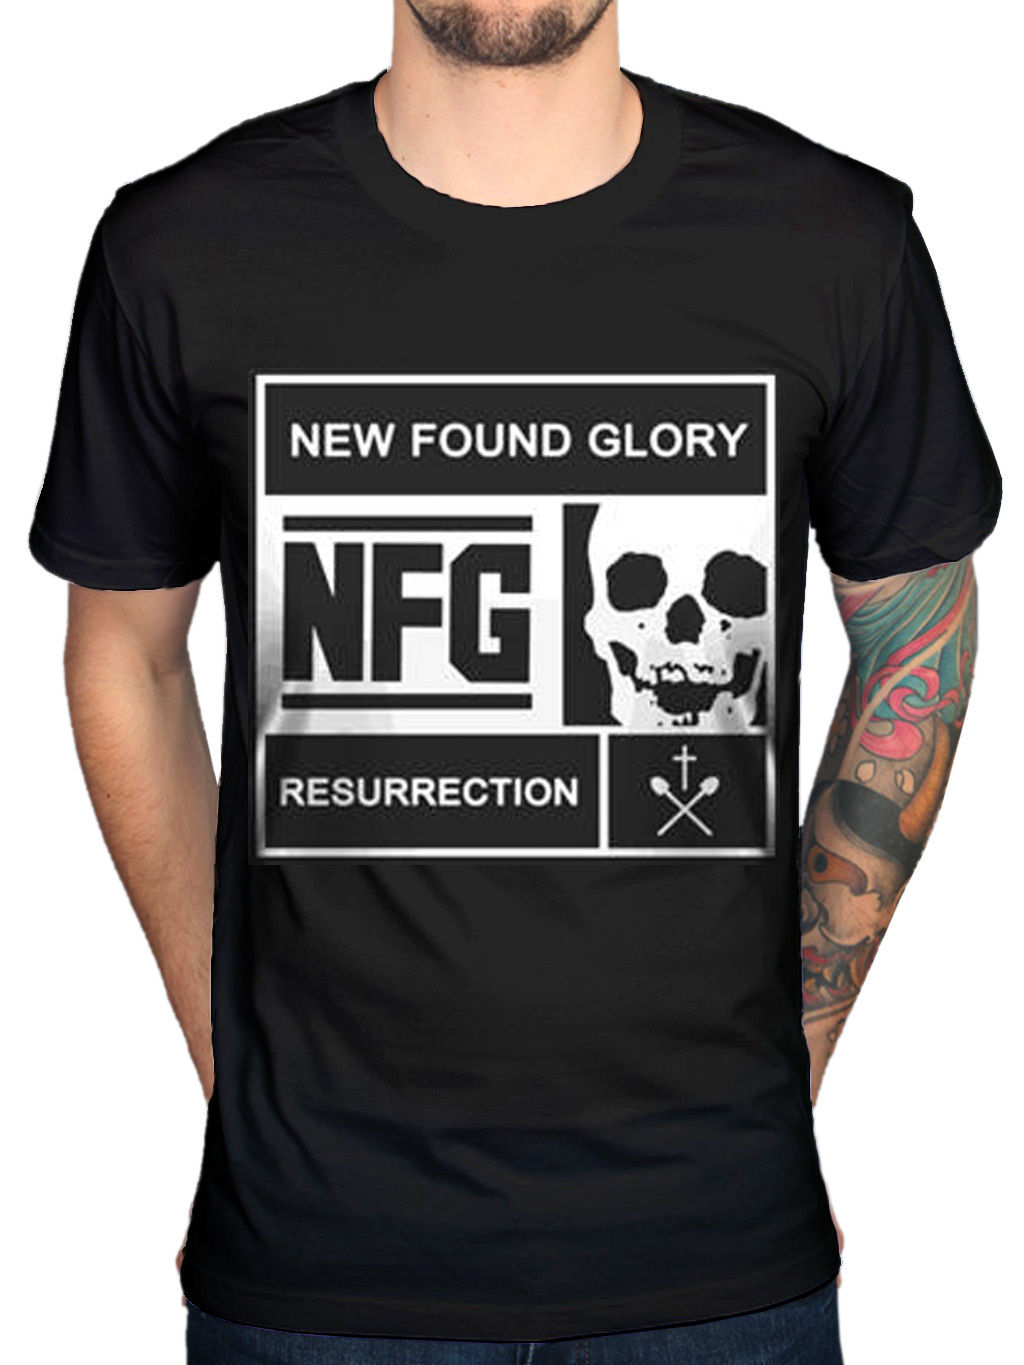 Official New Found Glory Blocked Resurrection T-Shirt Pop Punk Band Merchandise Sale 100 % Cotton T Shirt TOP TEE